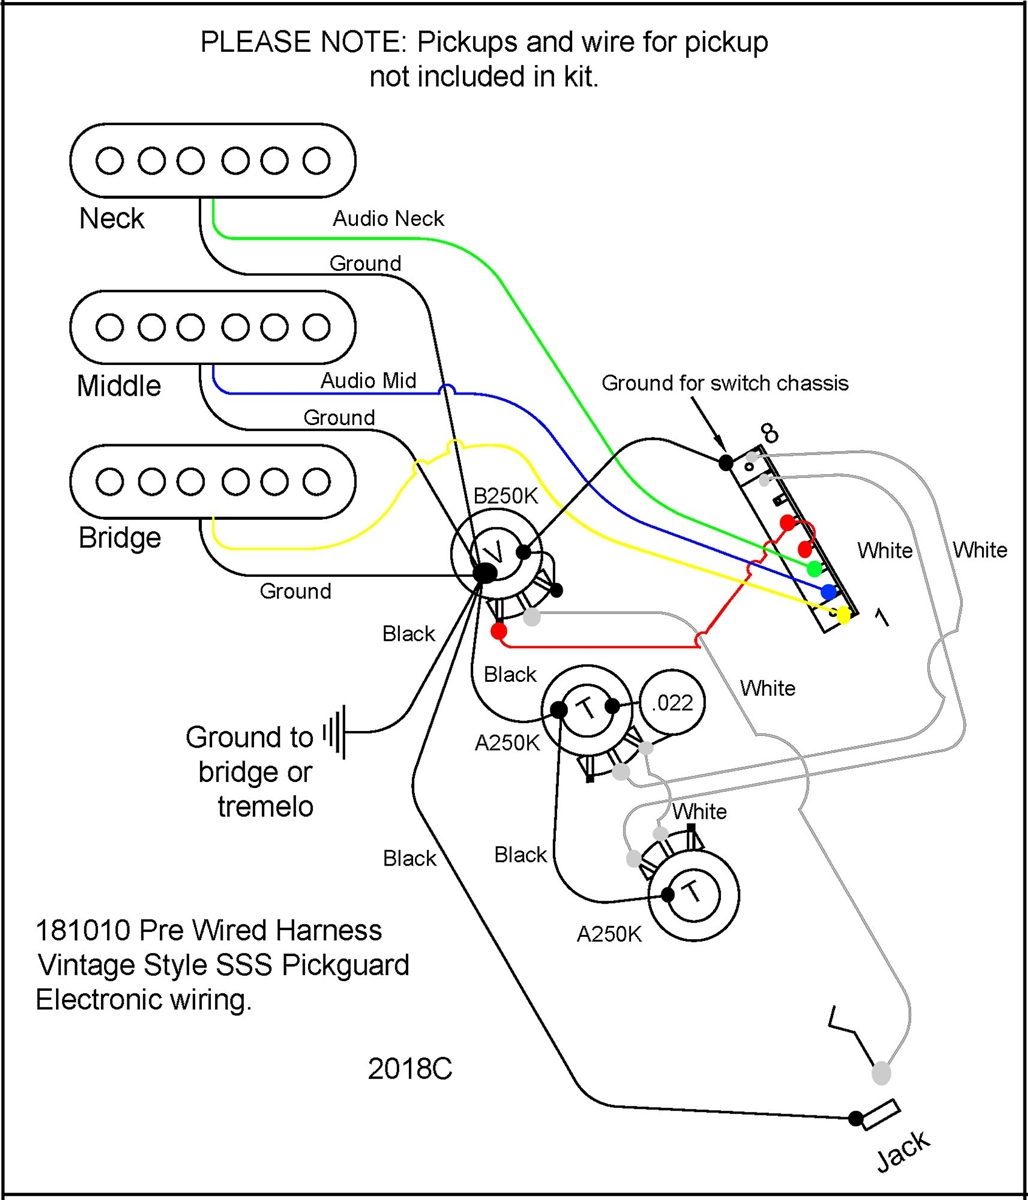 Pre Wire guitar harness for SSS S Style guitars. Includes wire harness, 5  way switch, 1 volume, 2 tone potentiometer, jack, capacitor and wired for  installation. Does not include pickupsBitterroot Guitars